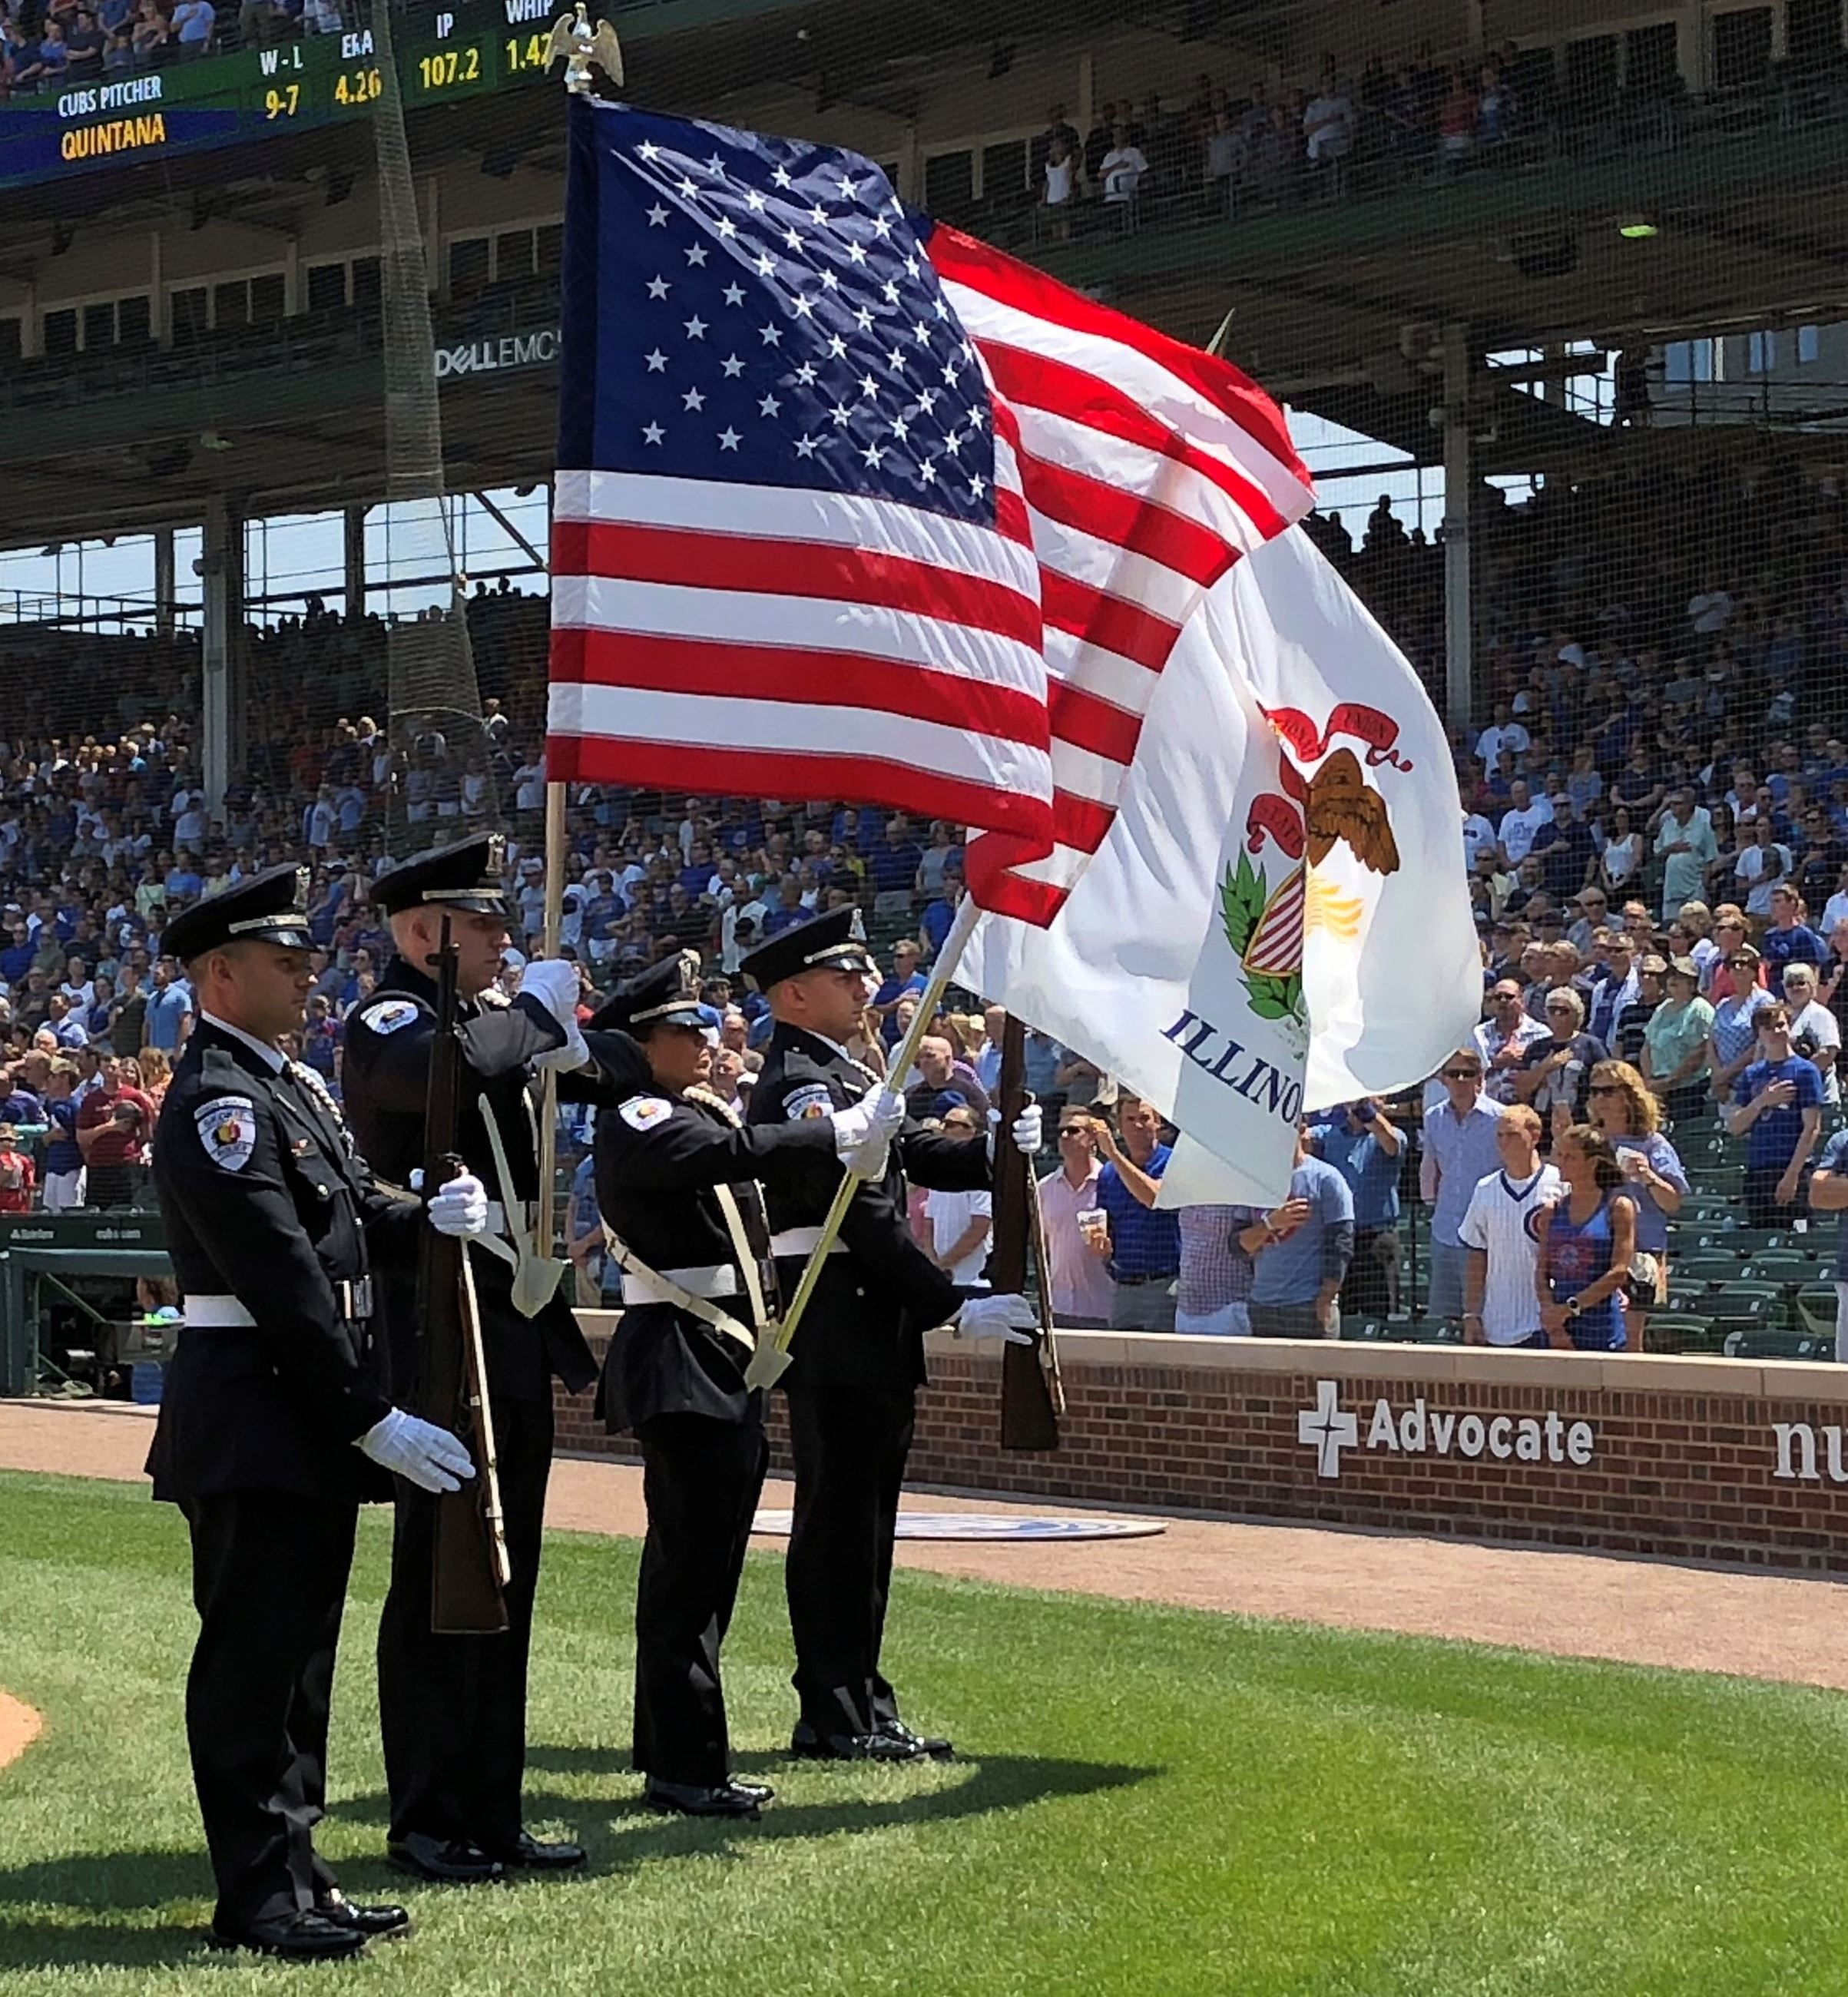 Skokie Police Presenting Colors at Chicago Cubs Game